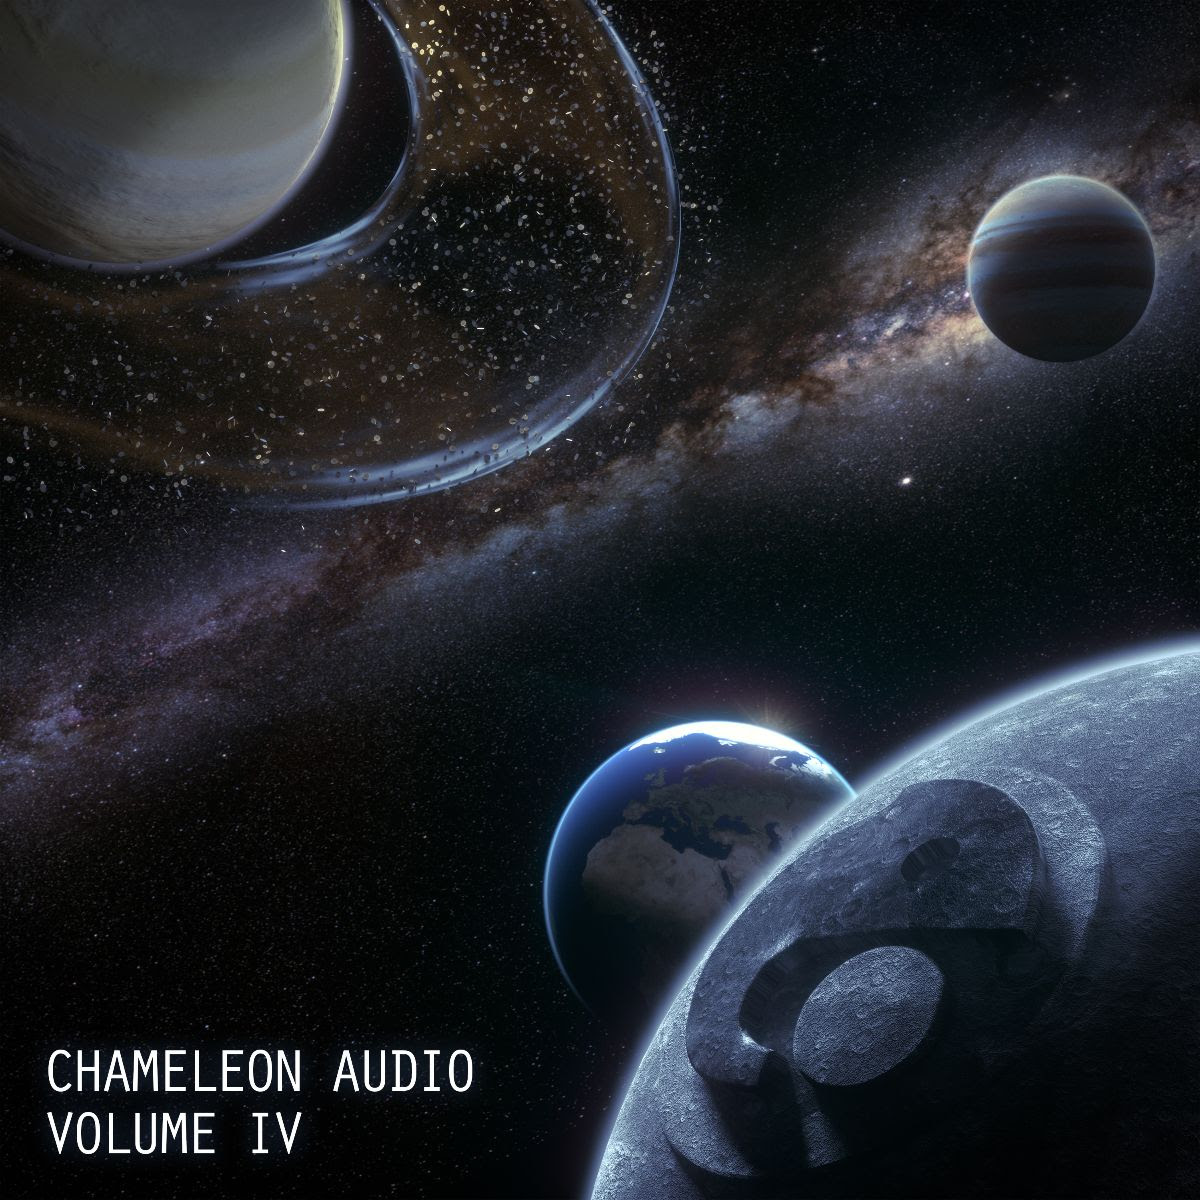 chameleon audio